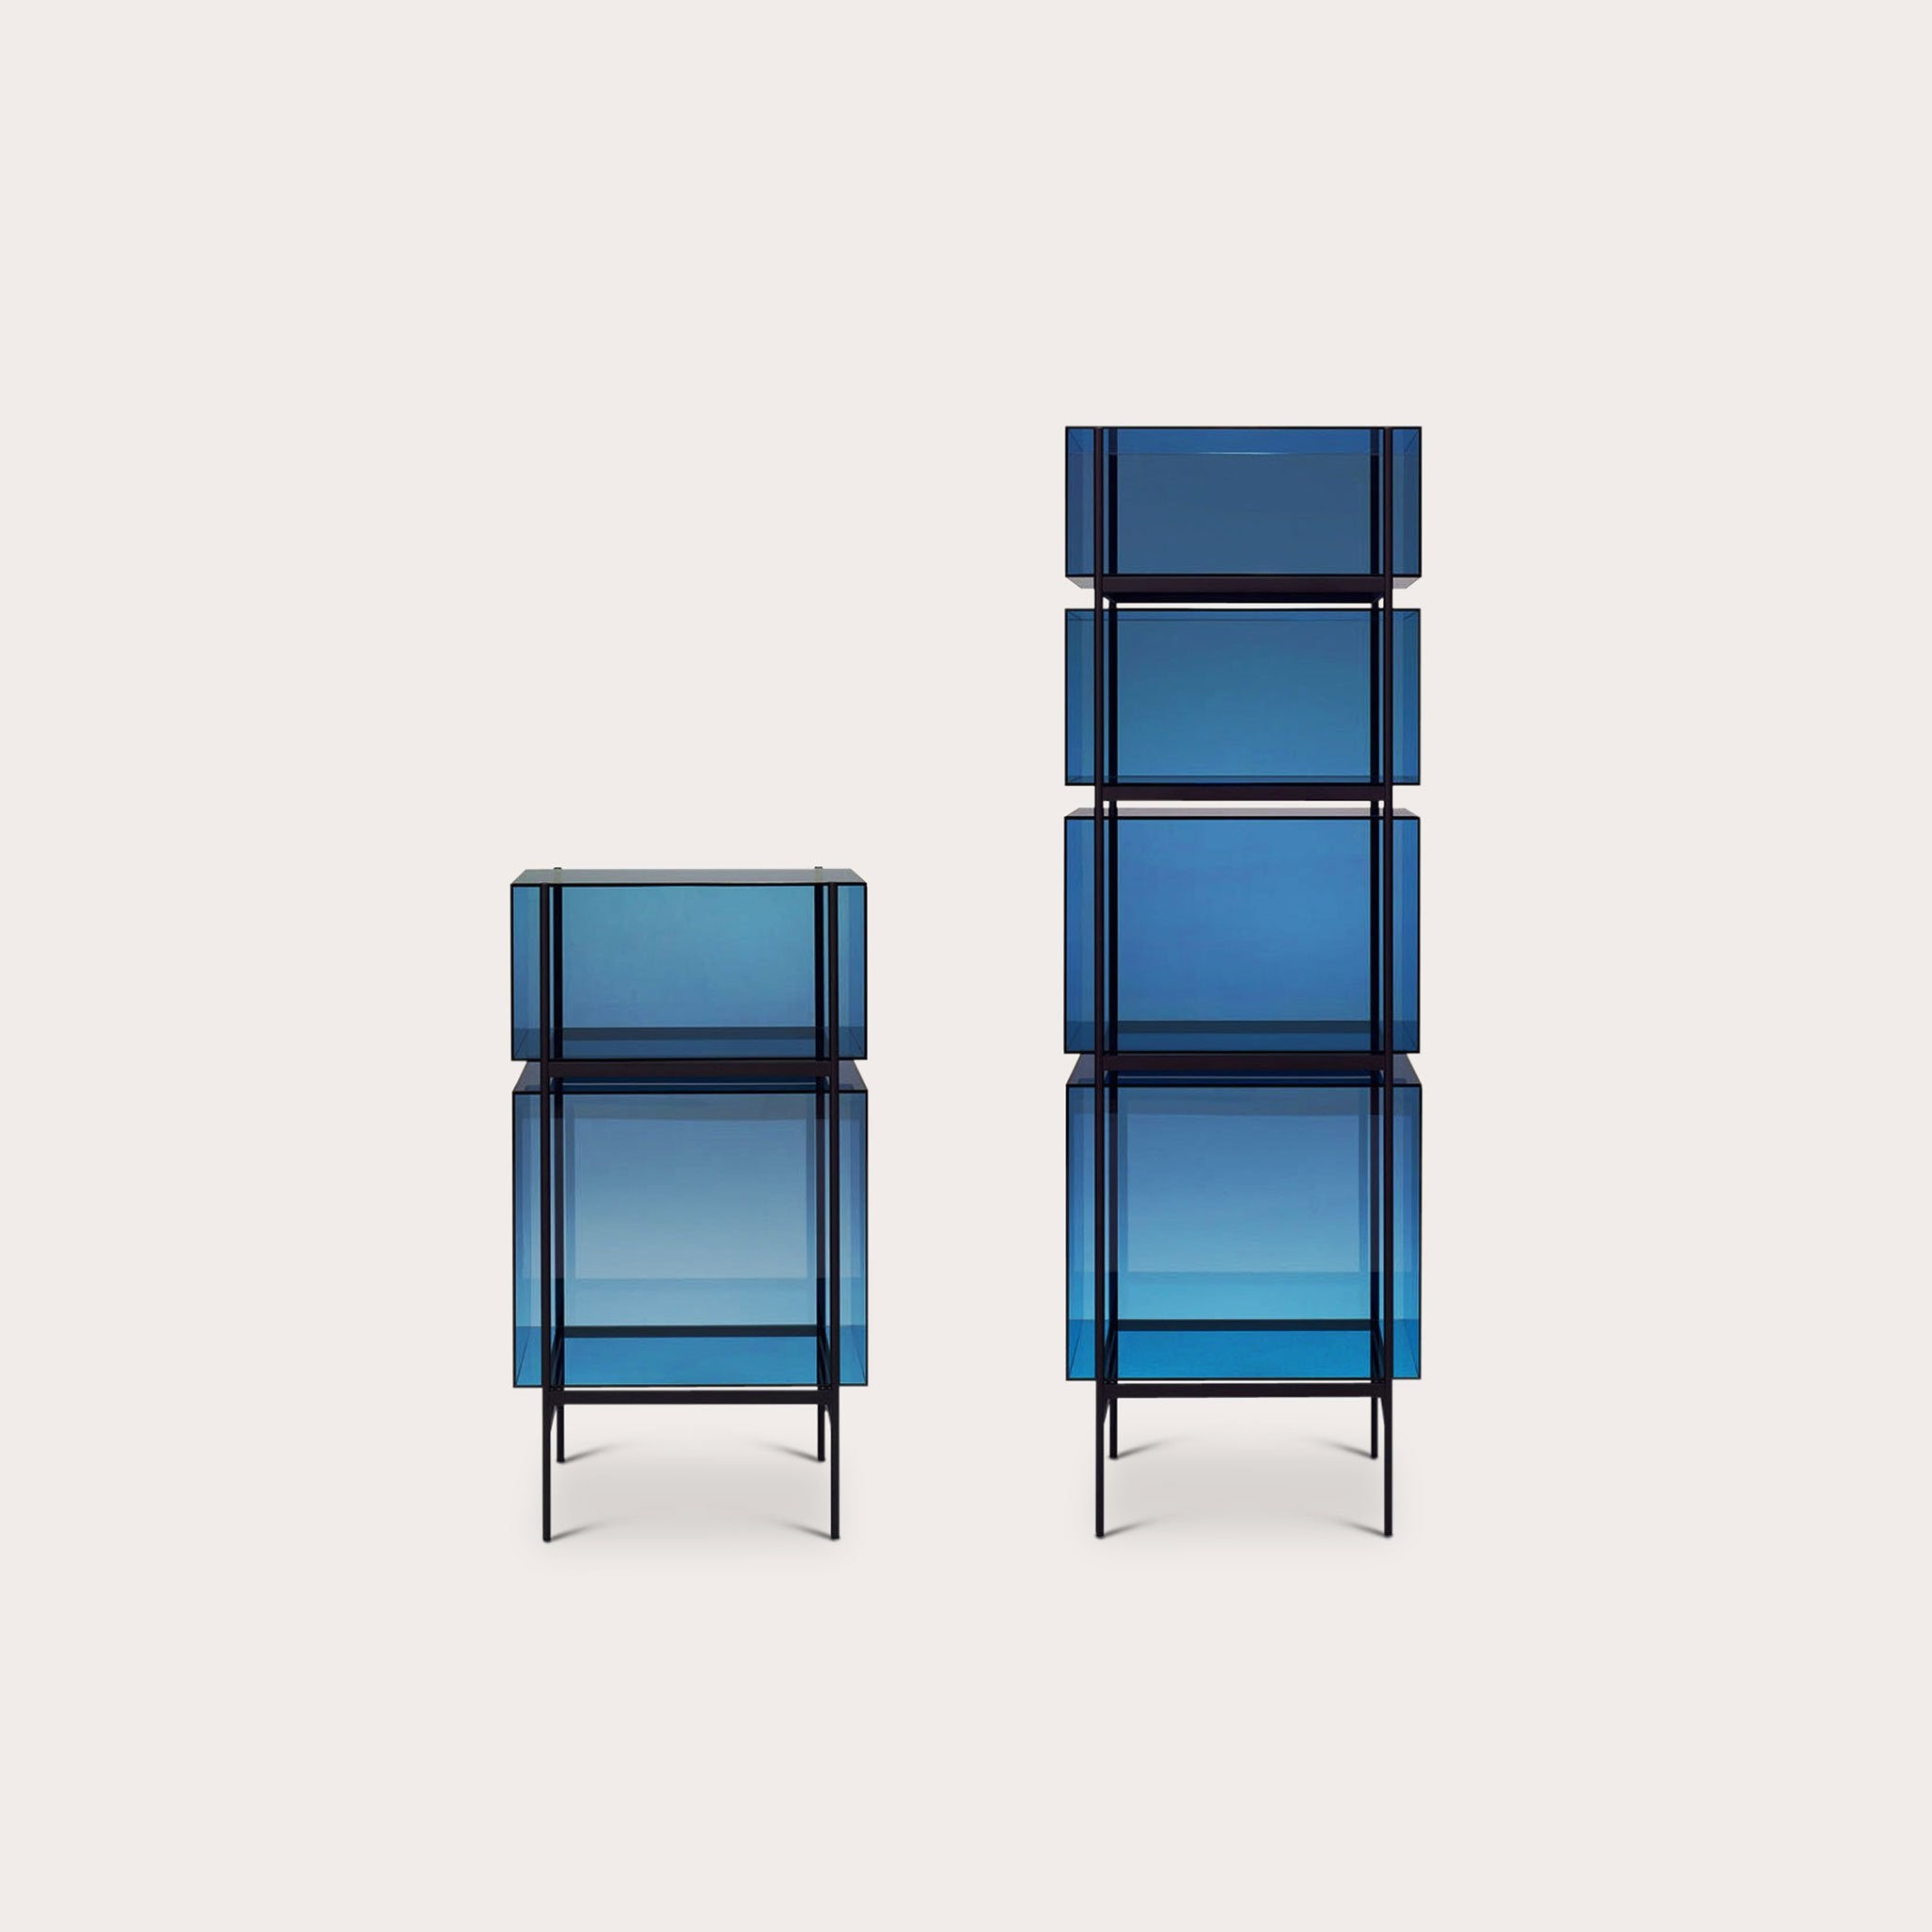 Lyn High Cabinets & Sideboards Visser & Meijwaard Designer Furniture Sku: 747-220-10006